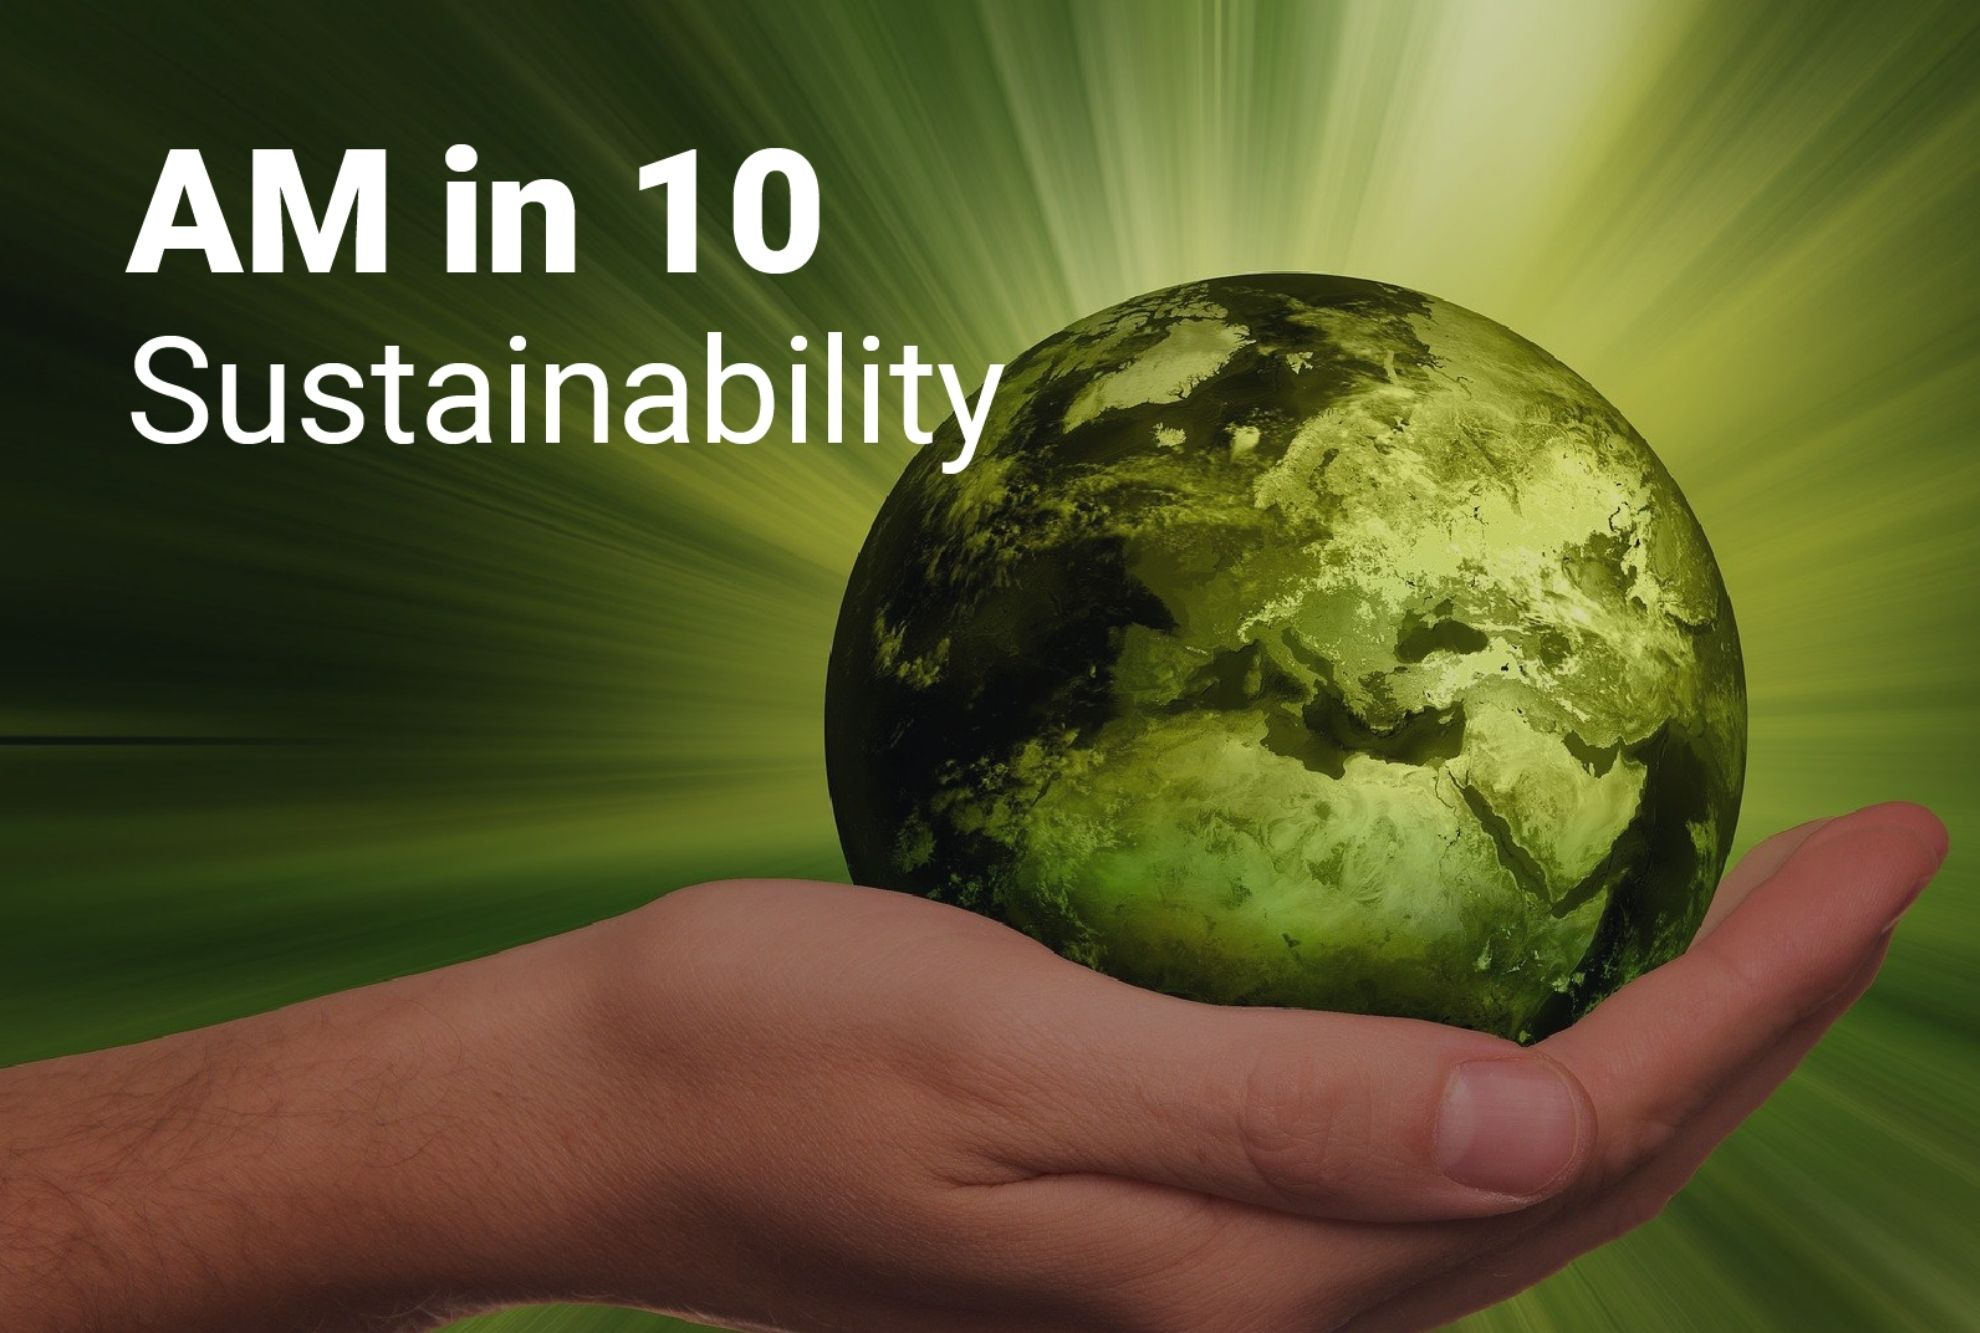 Featured image - AM in 10 - additive manufactruing and sustainability